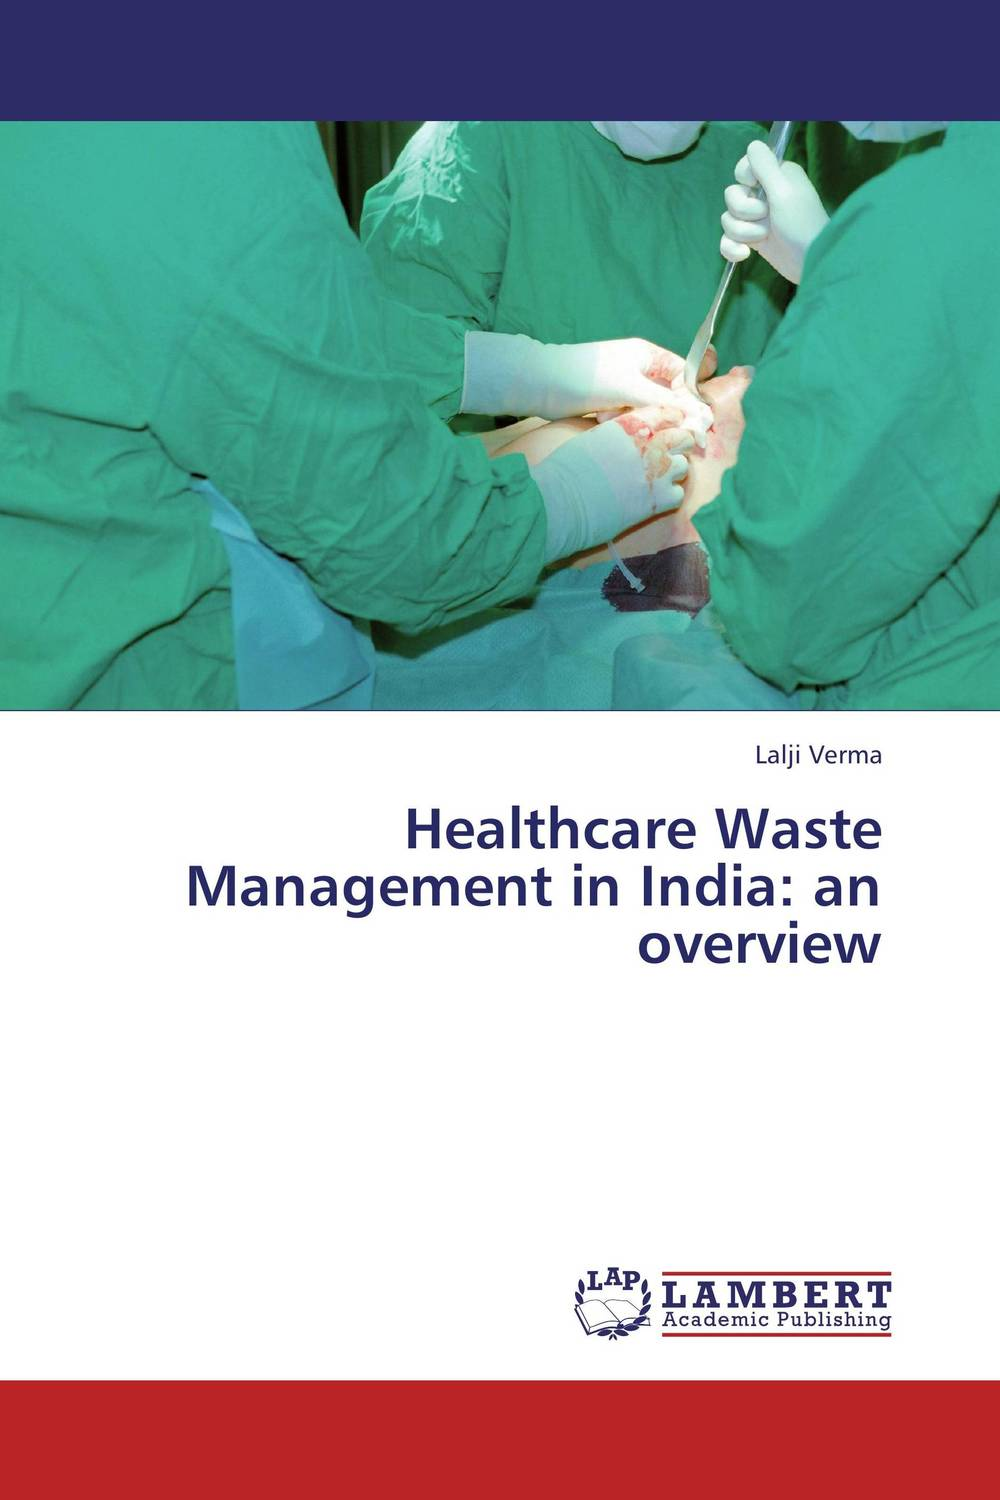 Healthcare Waste Management in India: an overview